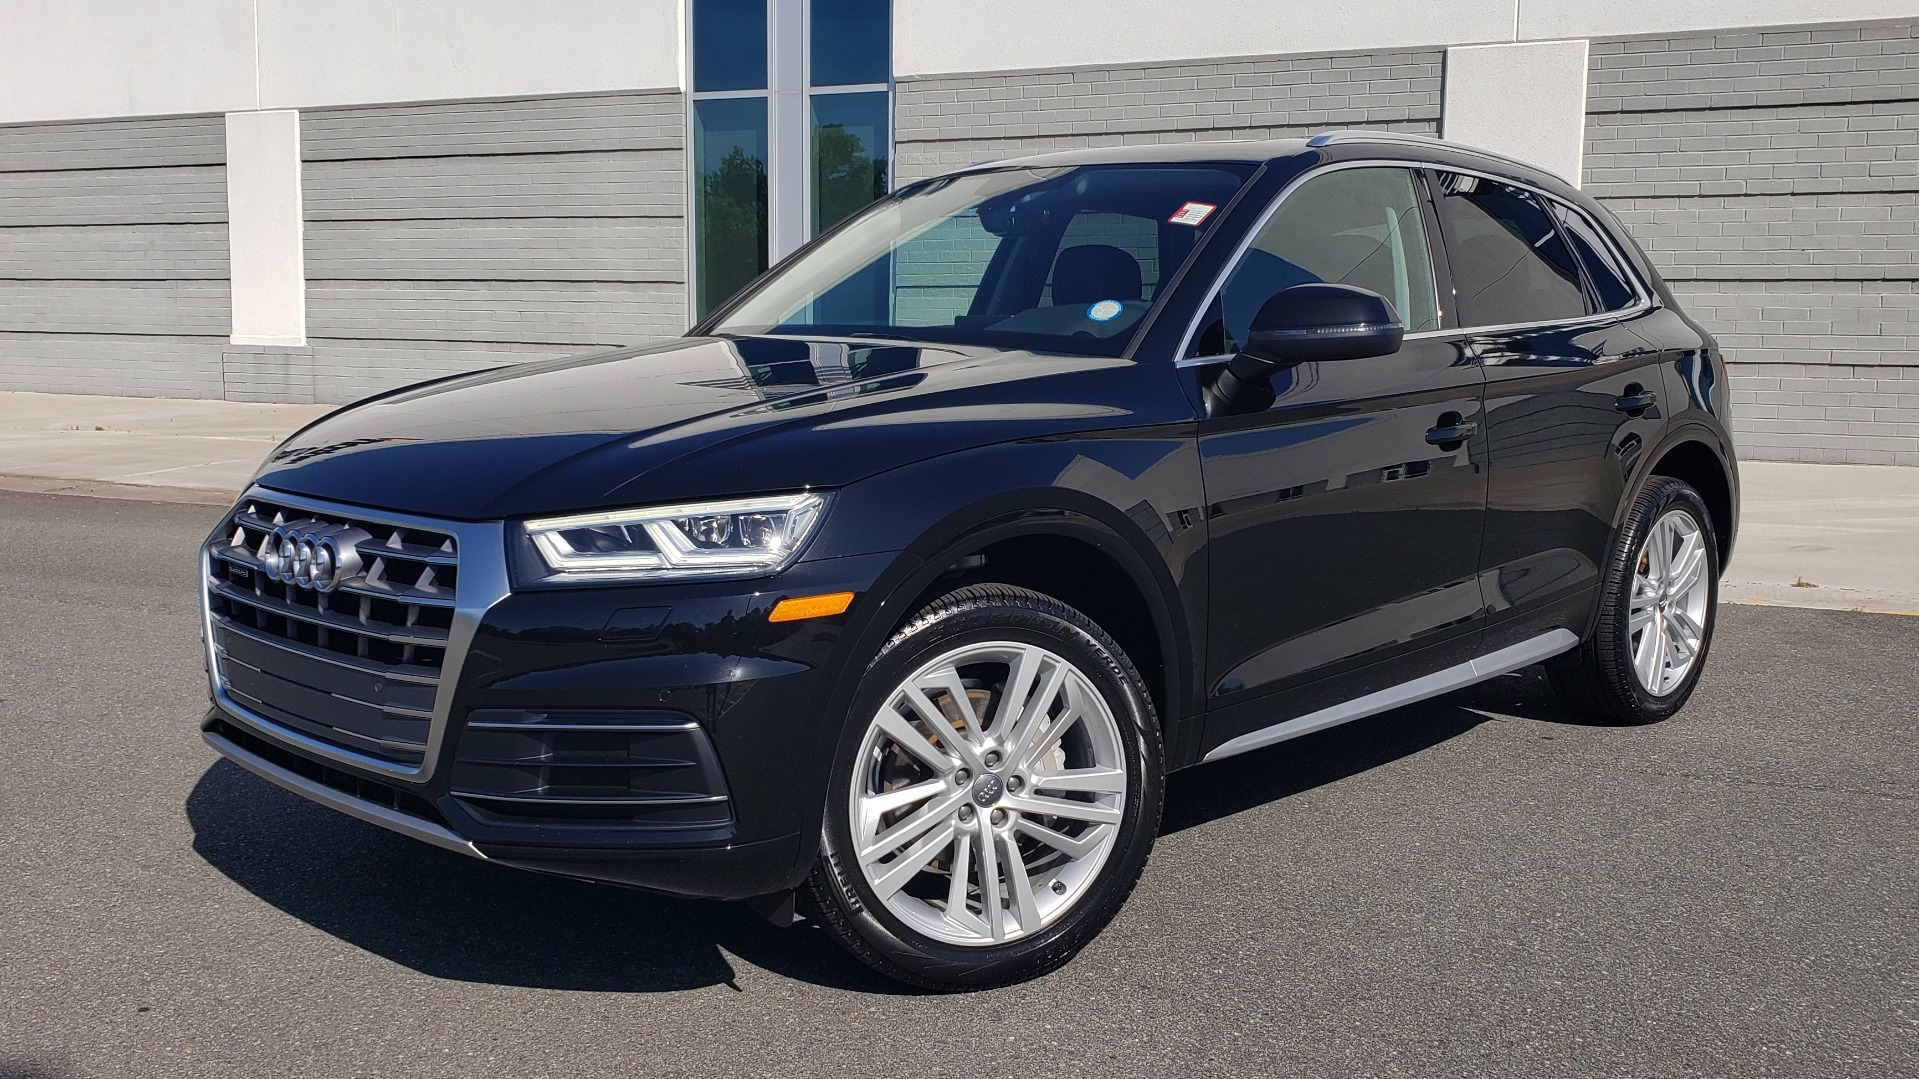 Used 2018 Audi Q5 PREMIUM PLUS / NAV / B&O SND / CLD WTHR / SUNROOF / REARVIEW for sale Sold at Formula Imports in Charlotte NC 28227 1